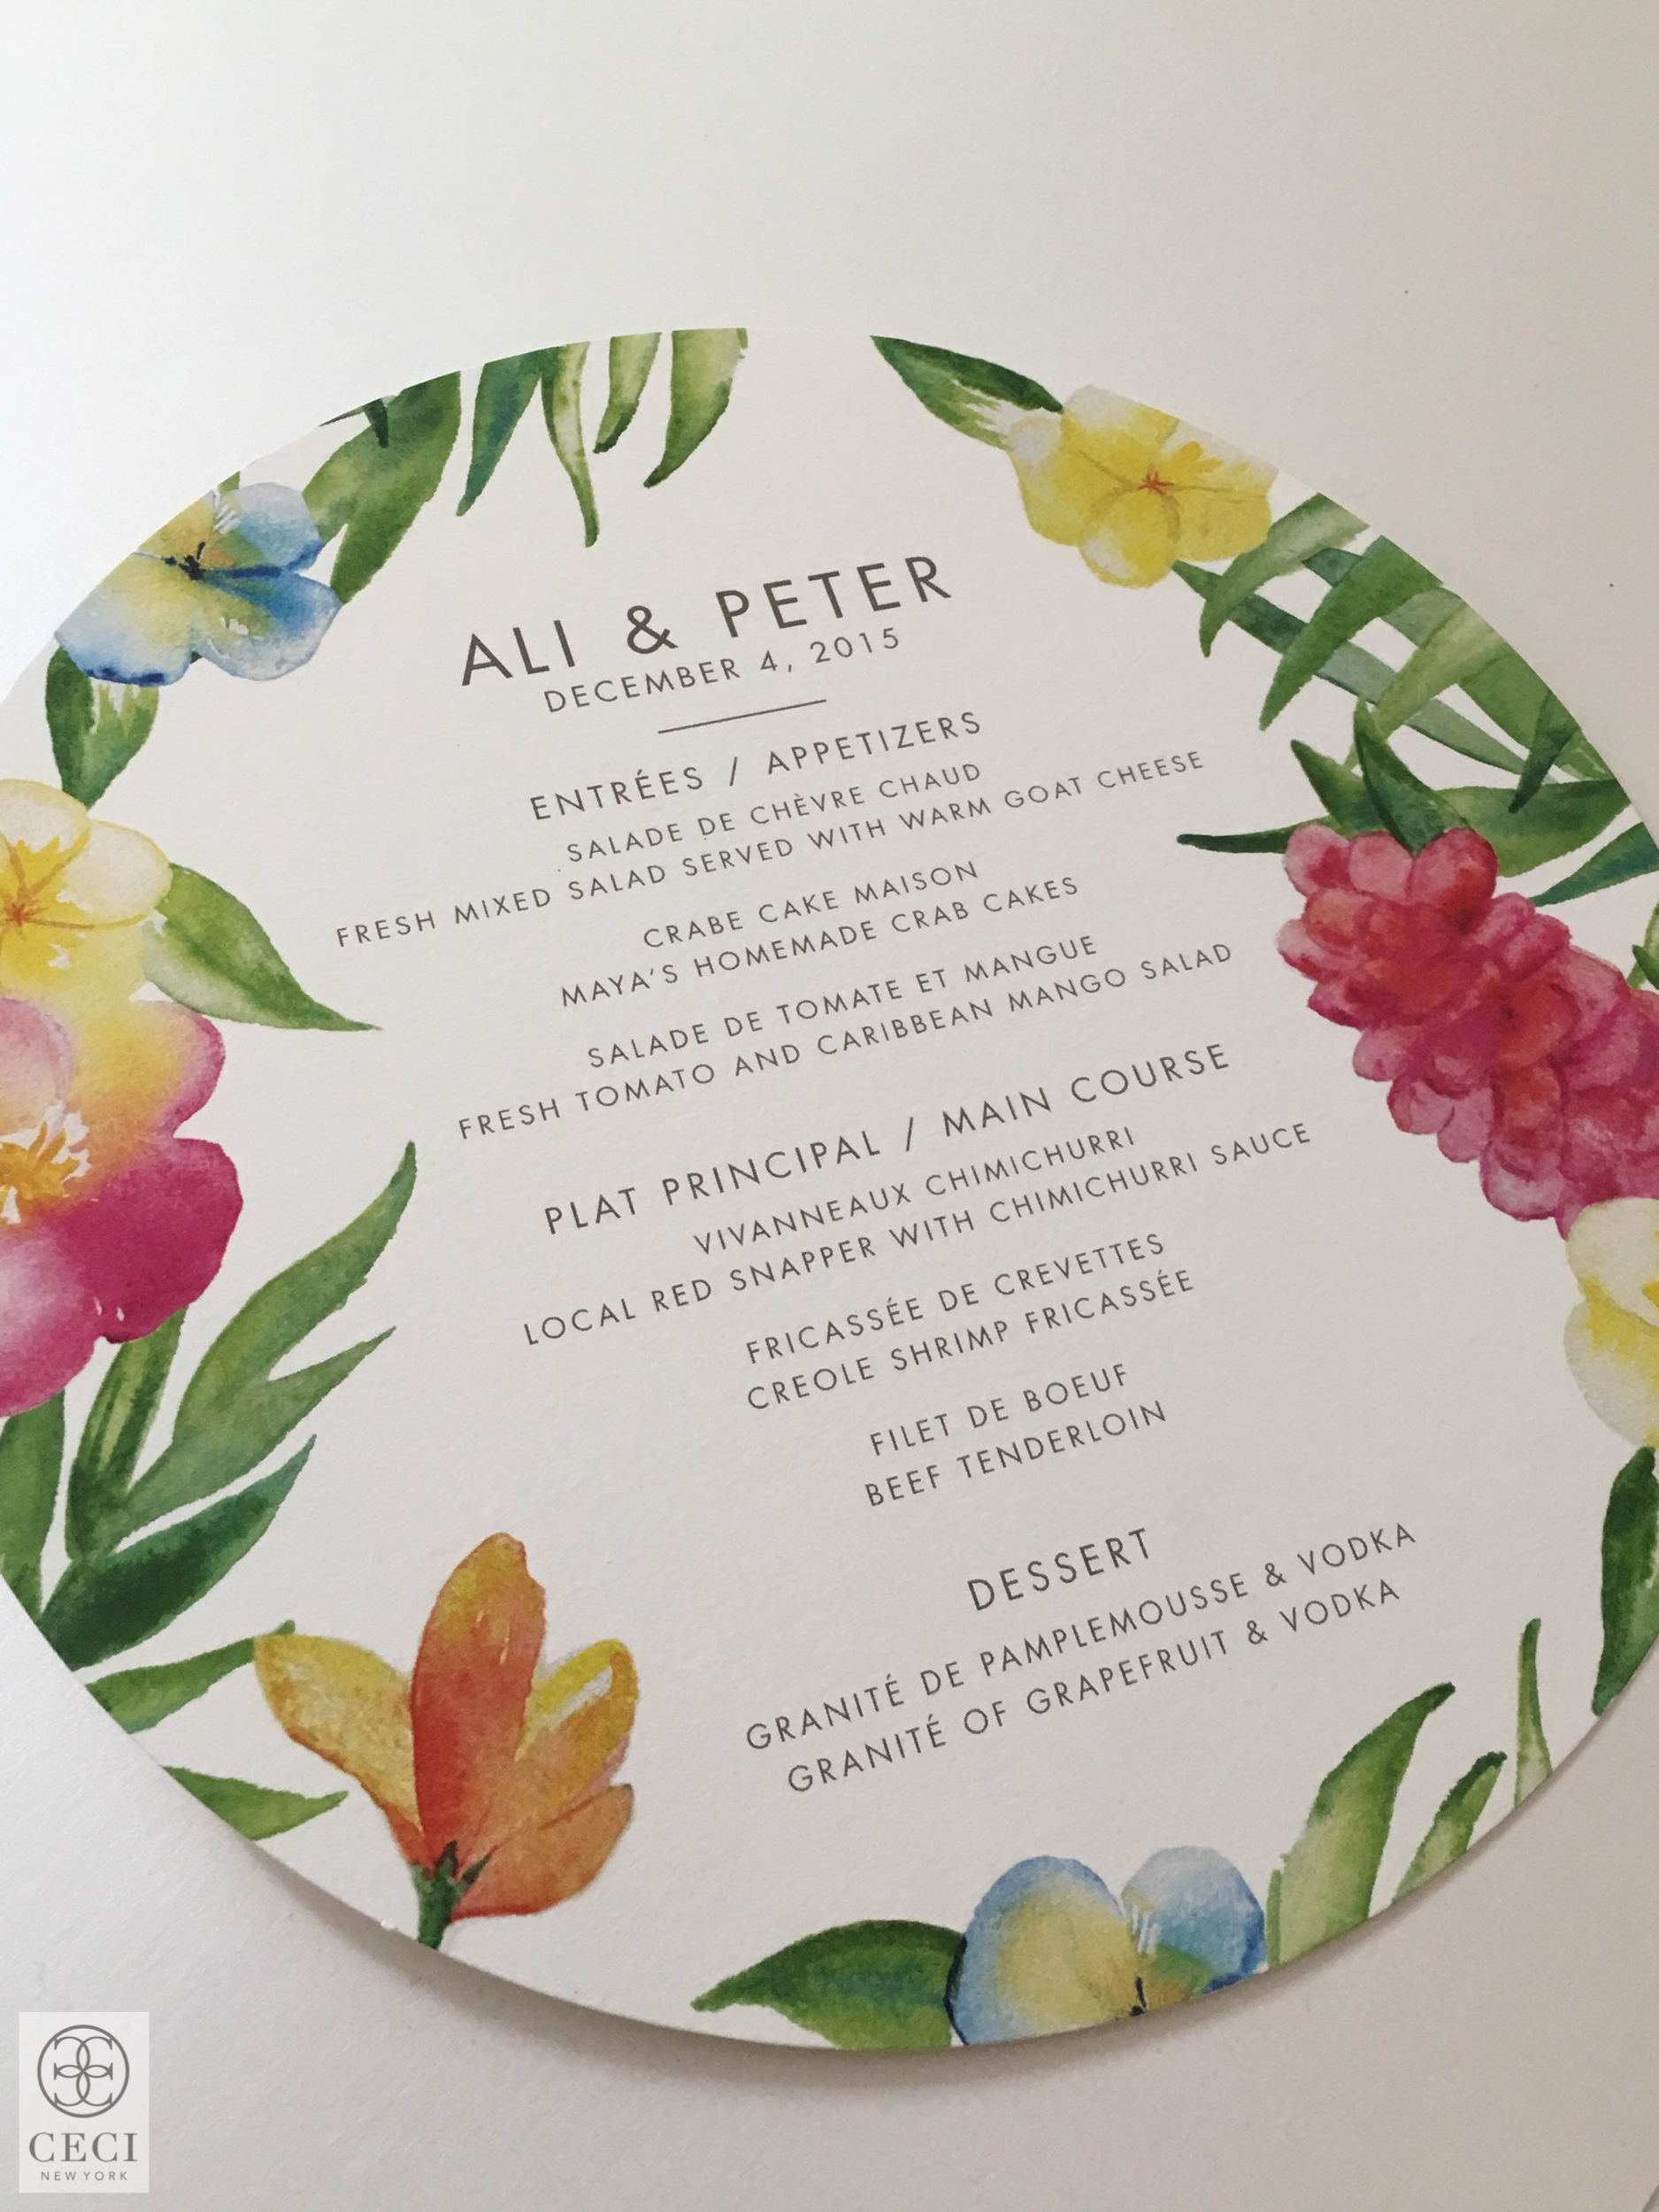 Ceci_New_York_Ceci_Style_Ceci_Johnson_Luxury_Lifestyle_Destination_St._Barts_Wedding_Letterpress_Watercolor_Floral_Hand_Painted_Inspiration_Design_Custom_Couture_Personalized_Invitations_-10.jpg